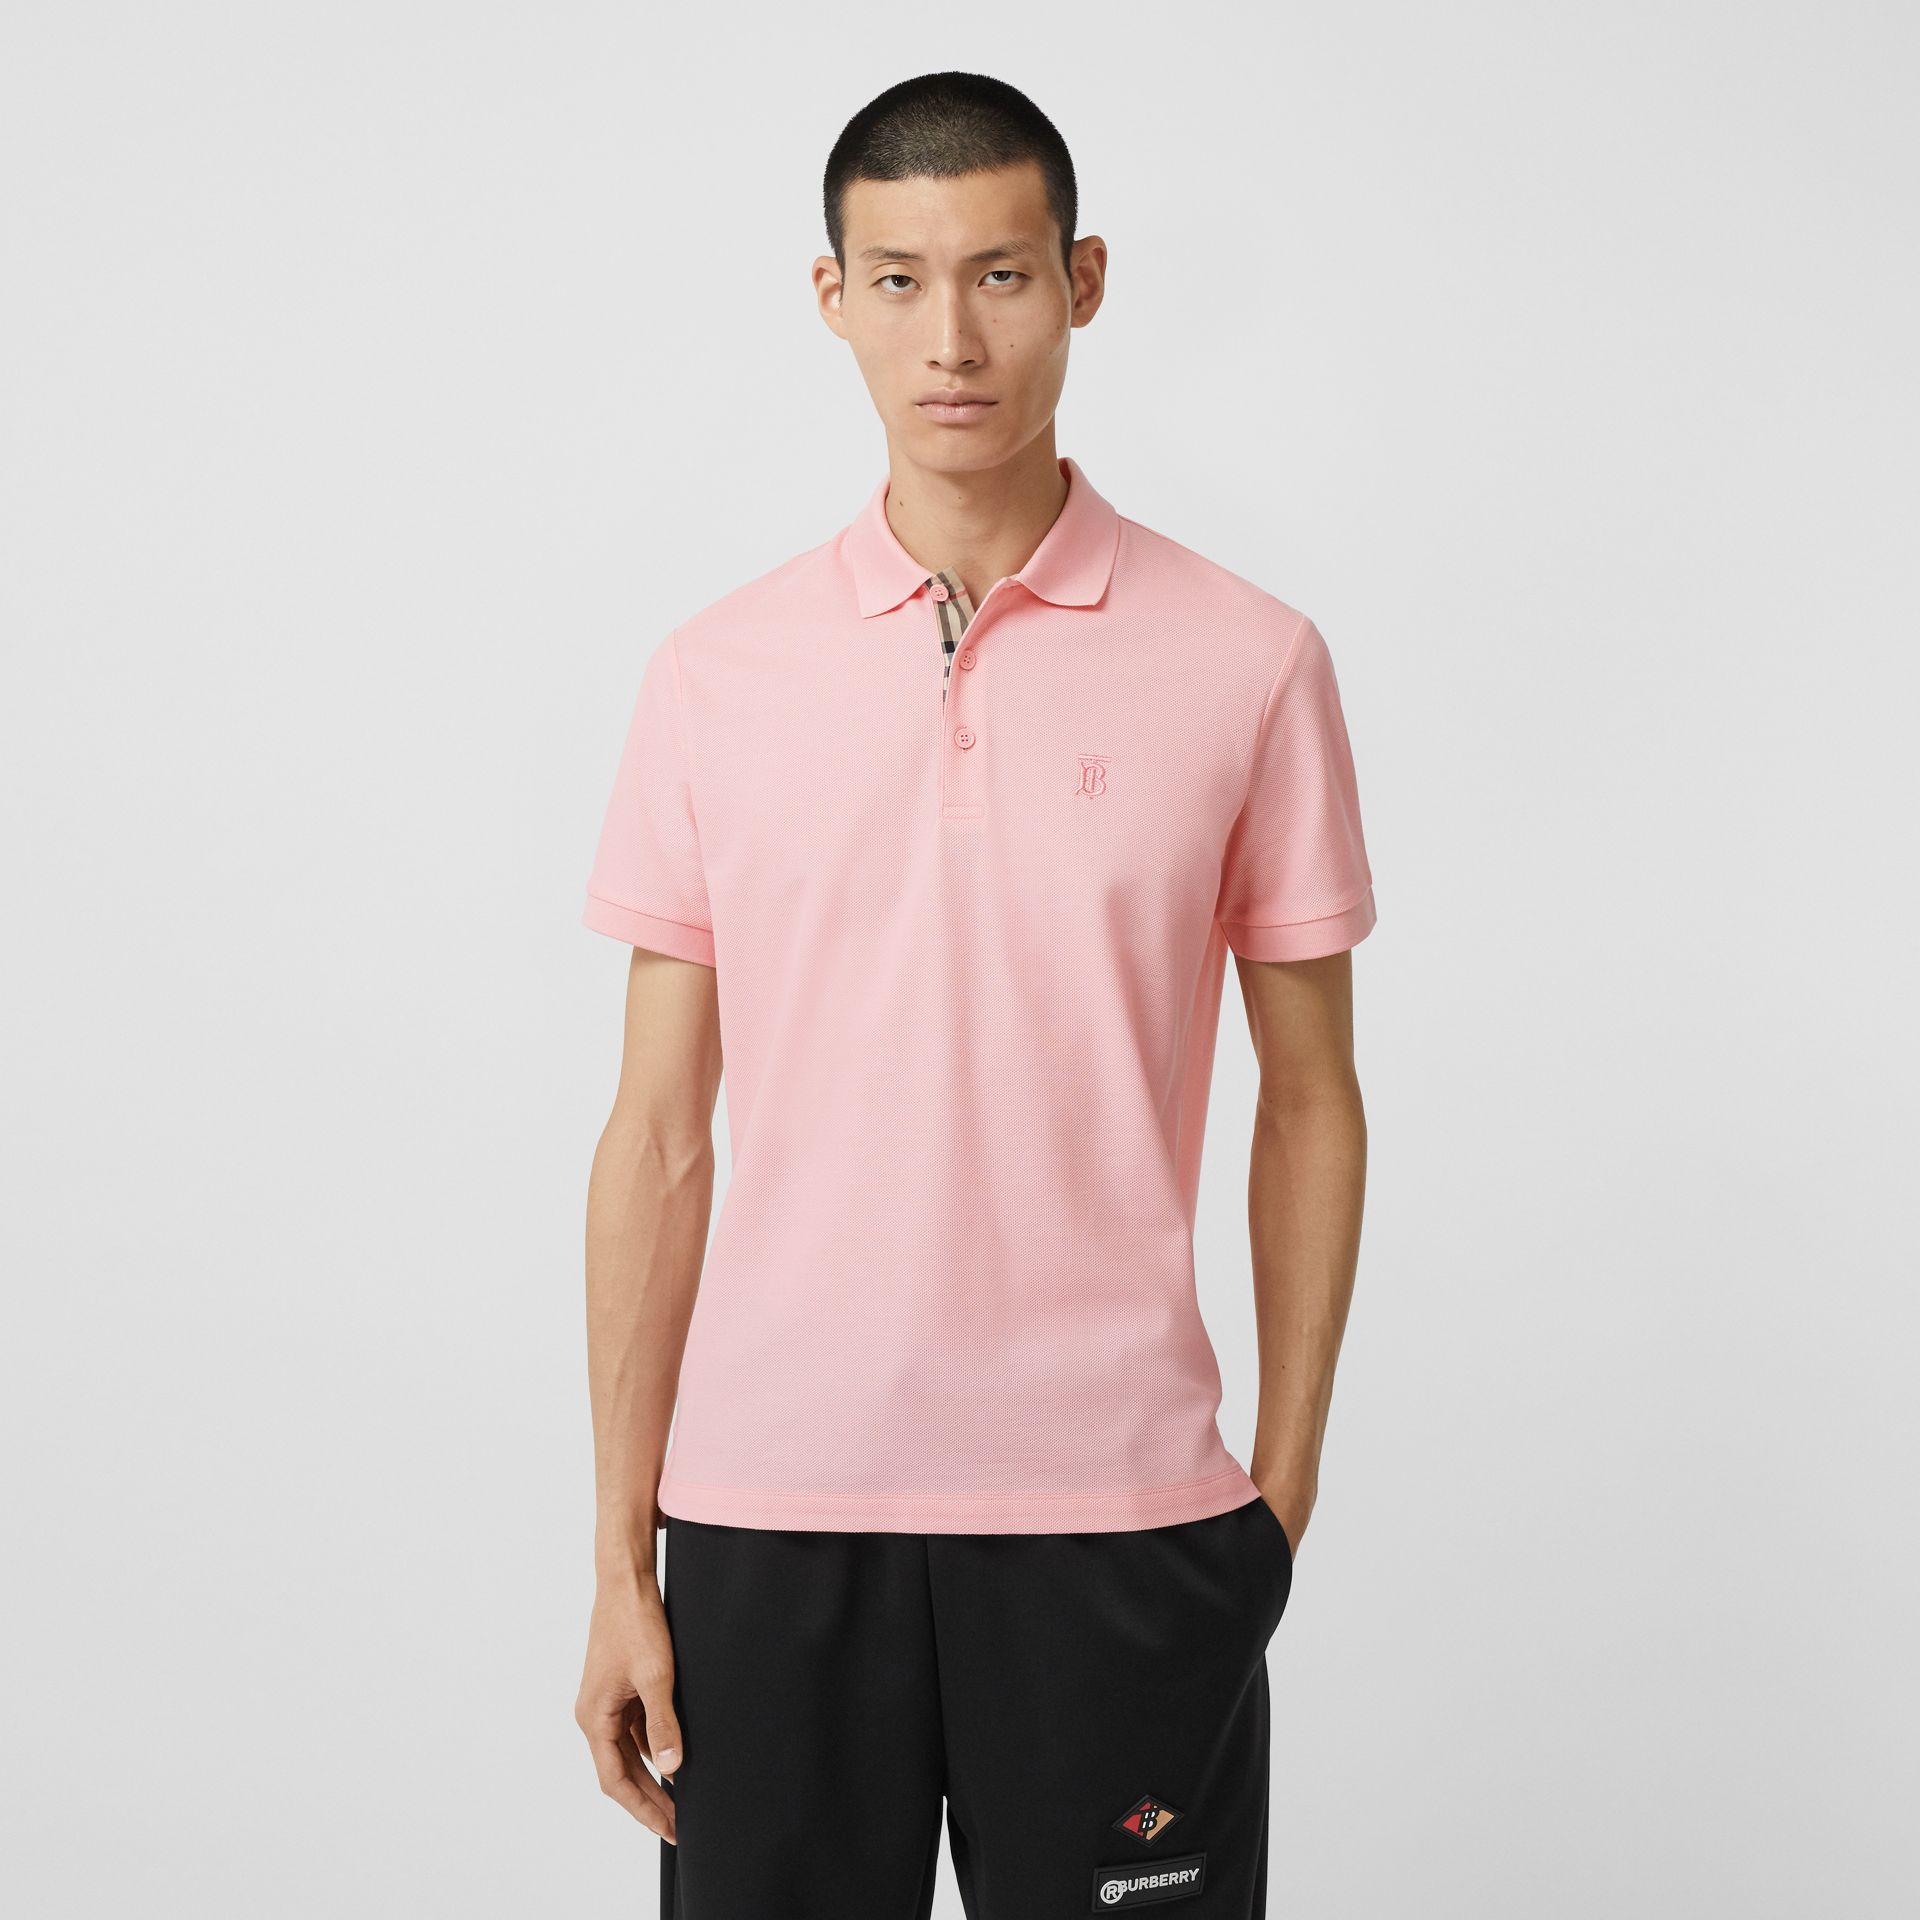 Monogram Motif Cotton Piqué Polo Shirt in Candy Pink - Men | Burberry - gallery image 4